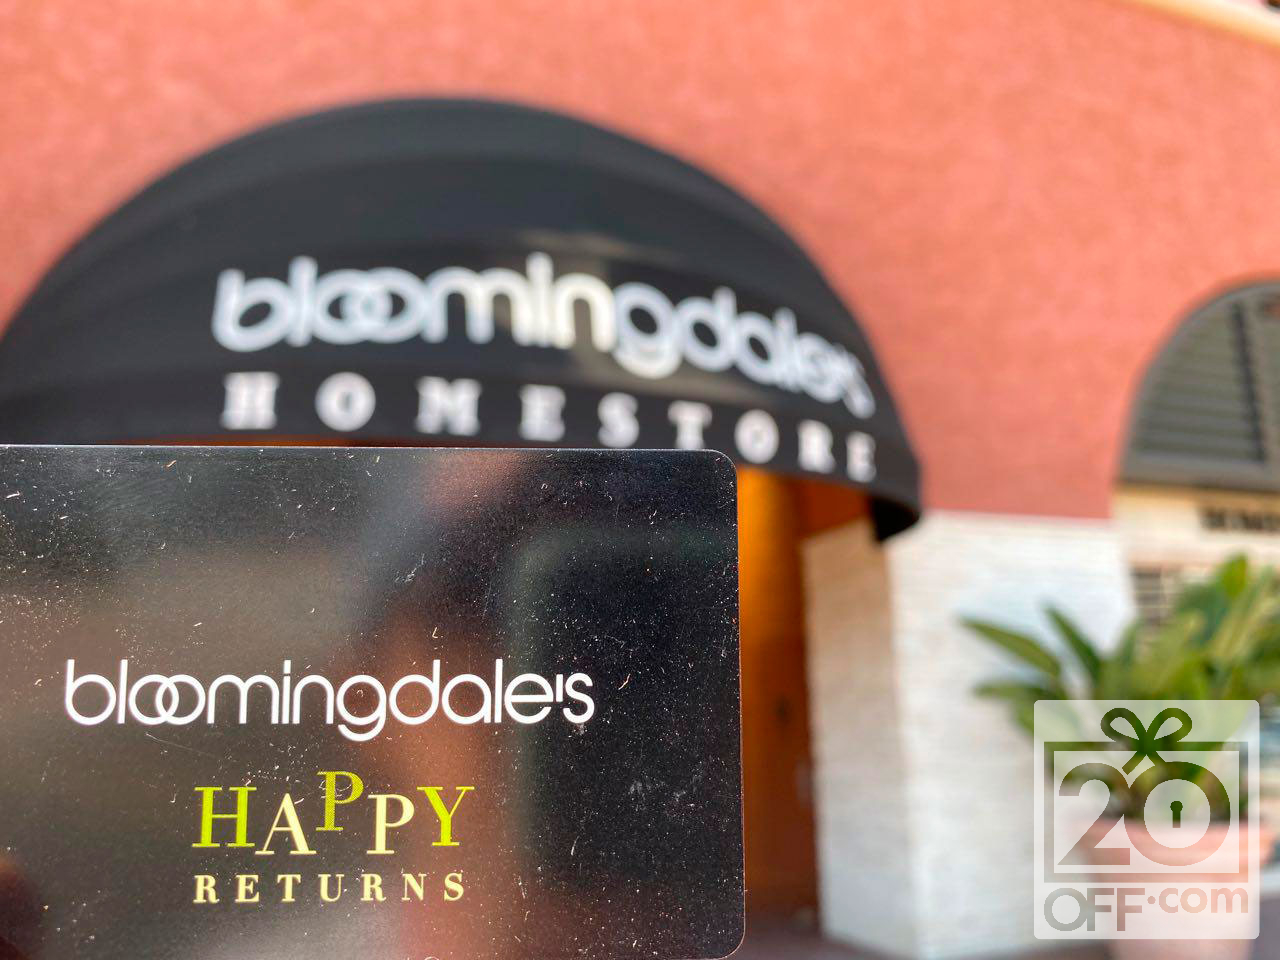 Bloomingdales Happy Returns Deals